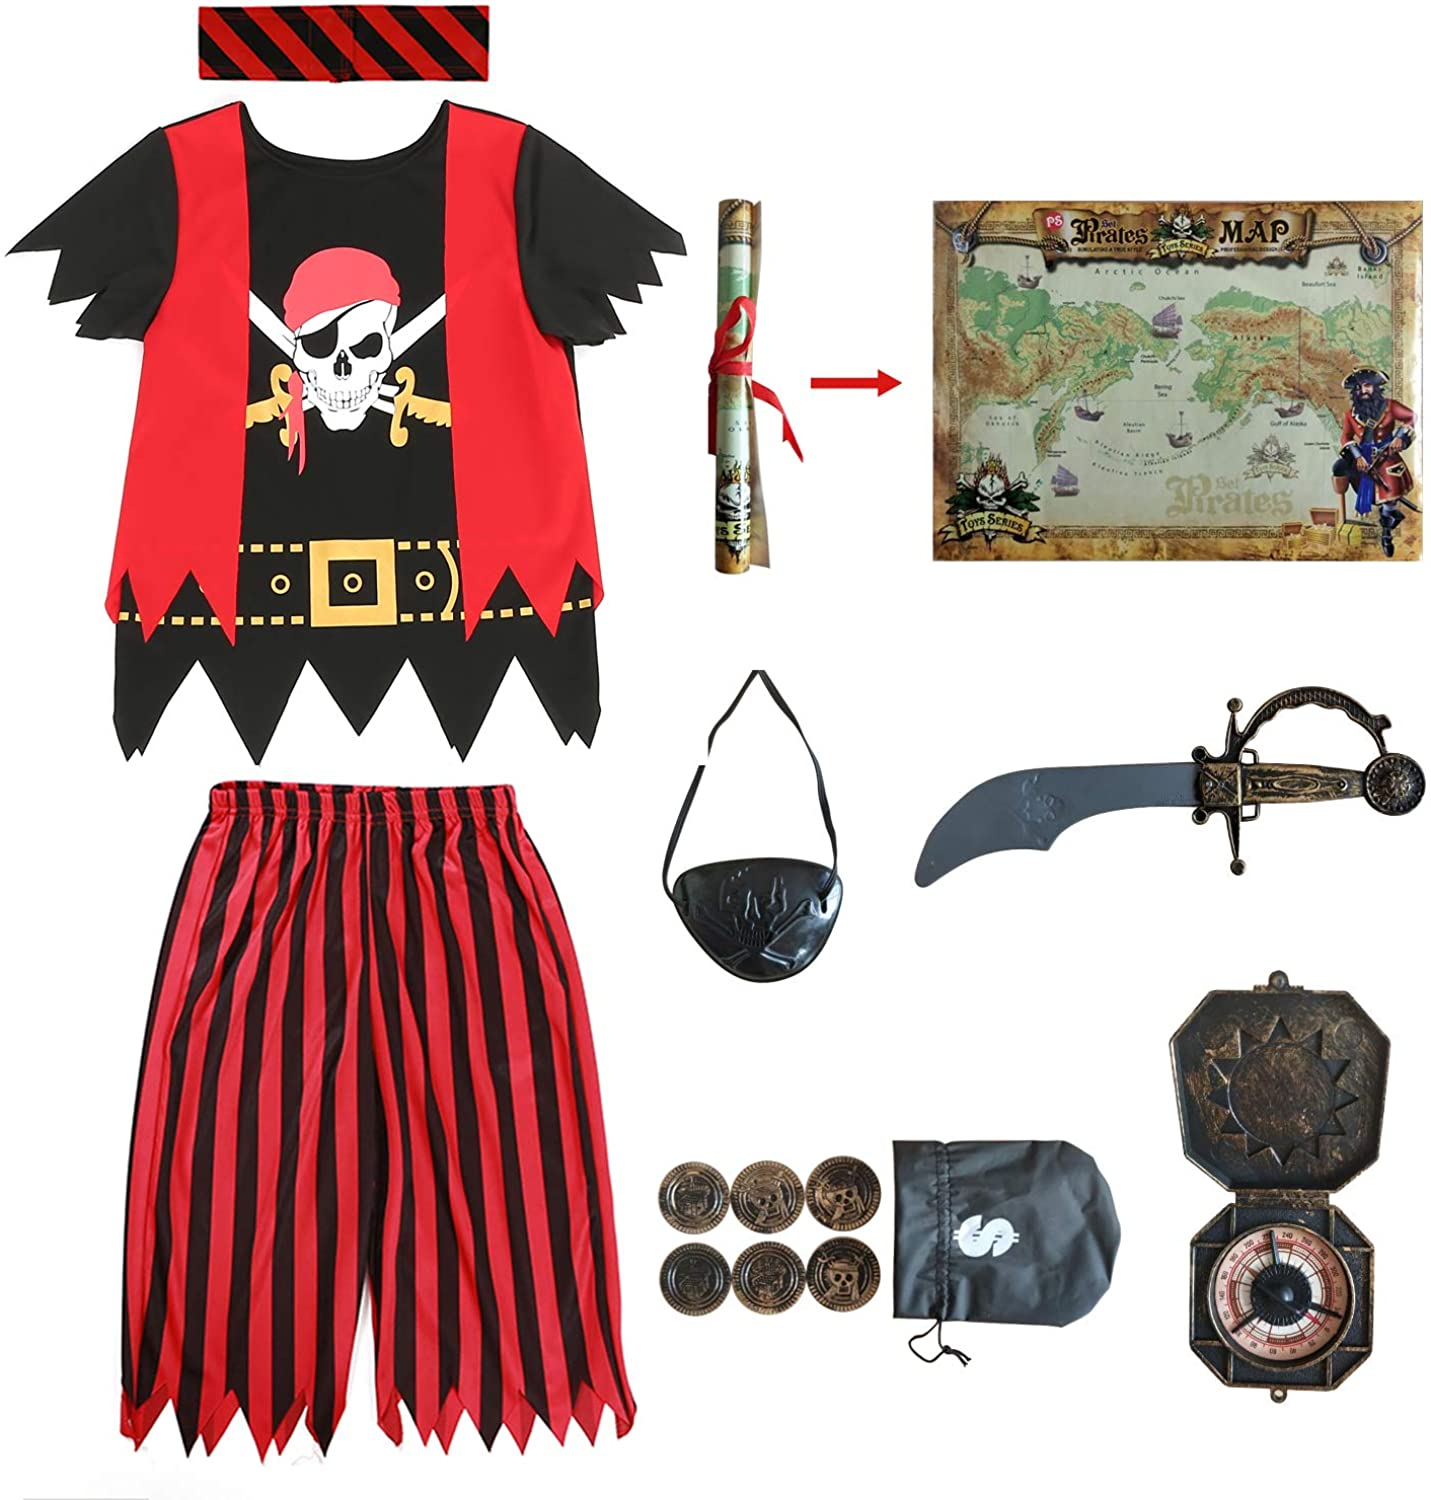 Kids Pirate Costume,Pirate Role Play Dress Up Completed Set 8pcs for Boys Size 3-4,5-6,7-8,8-10